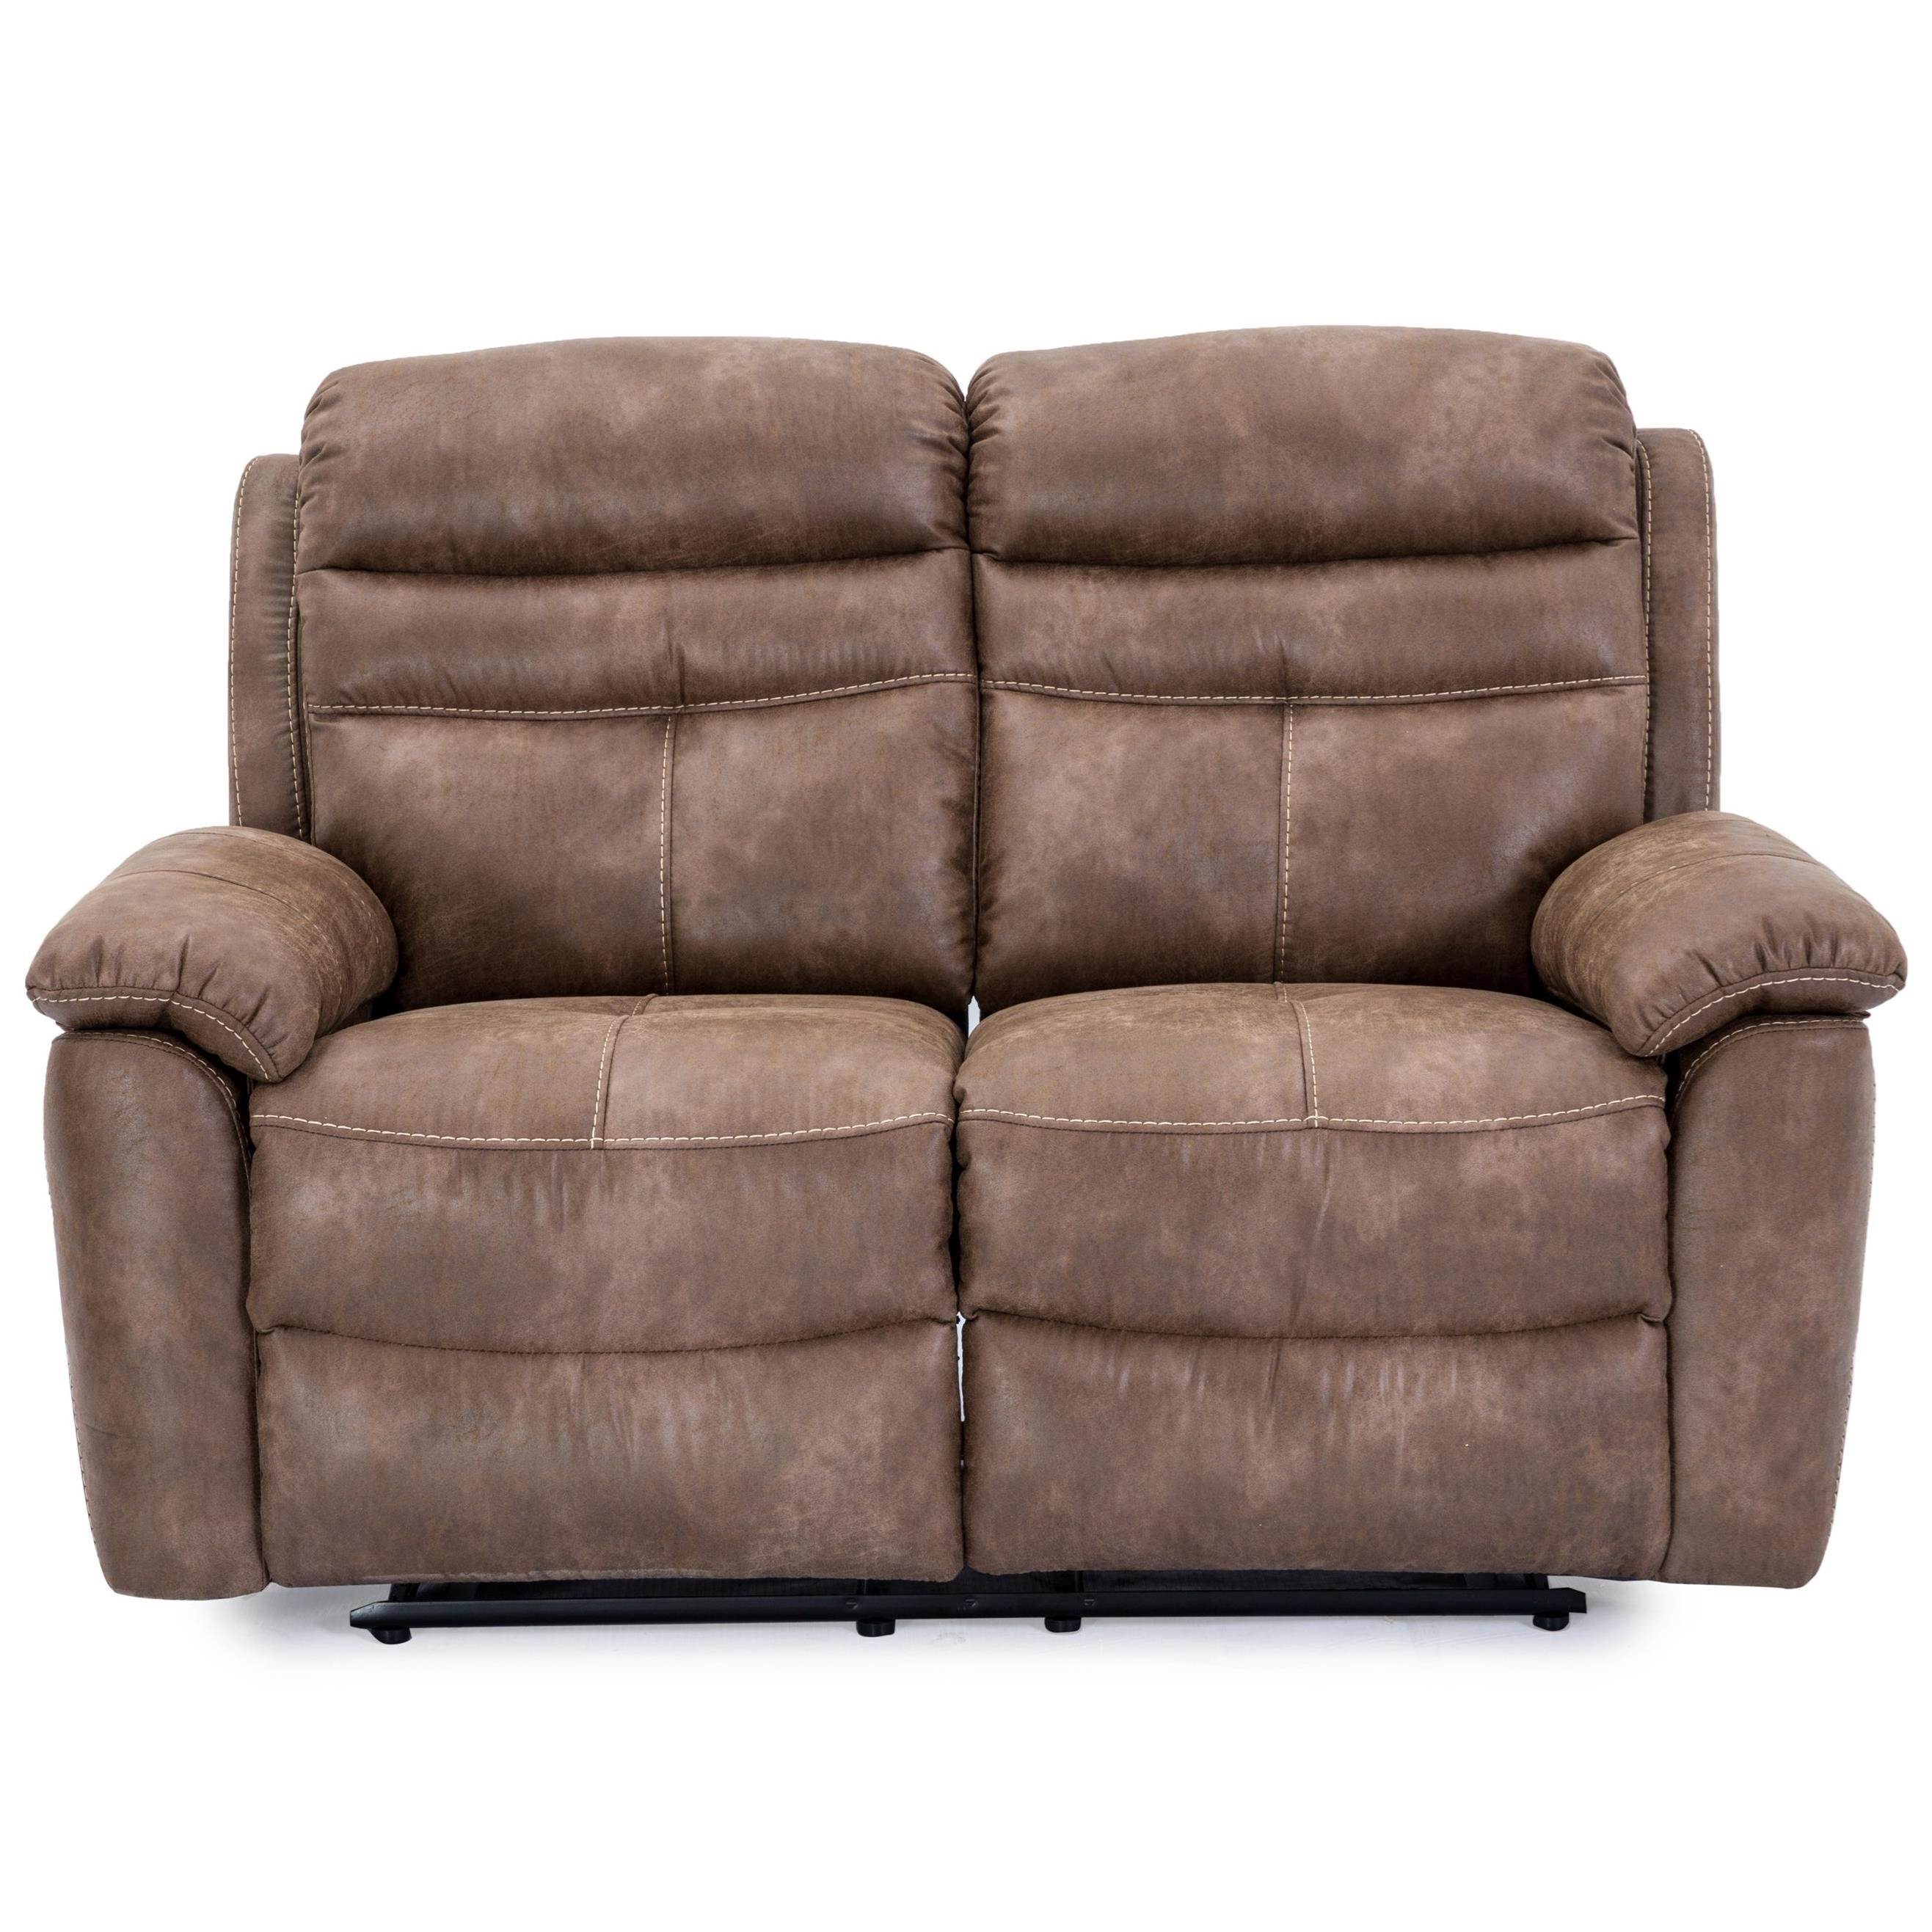 Wallhugger Dual Reclining Loveseat